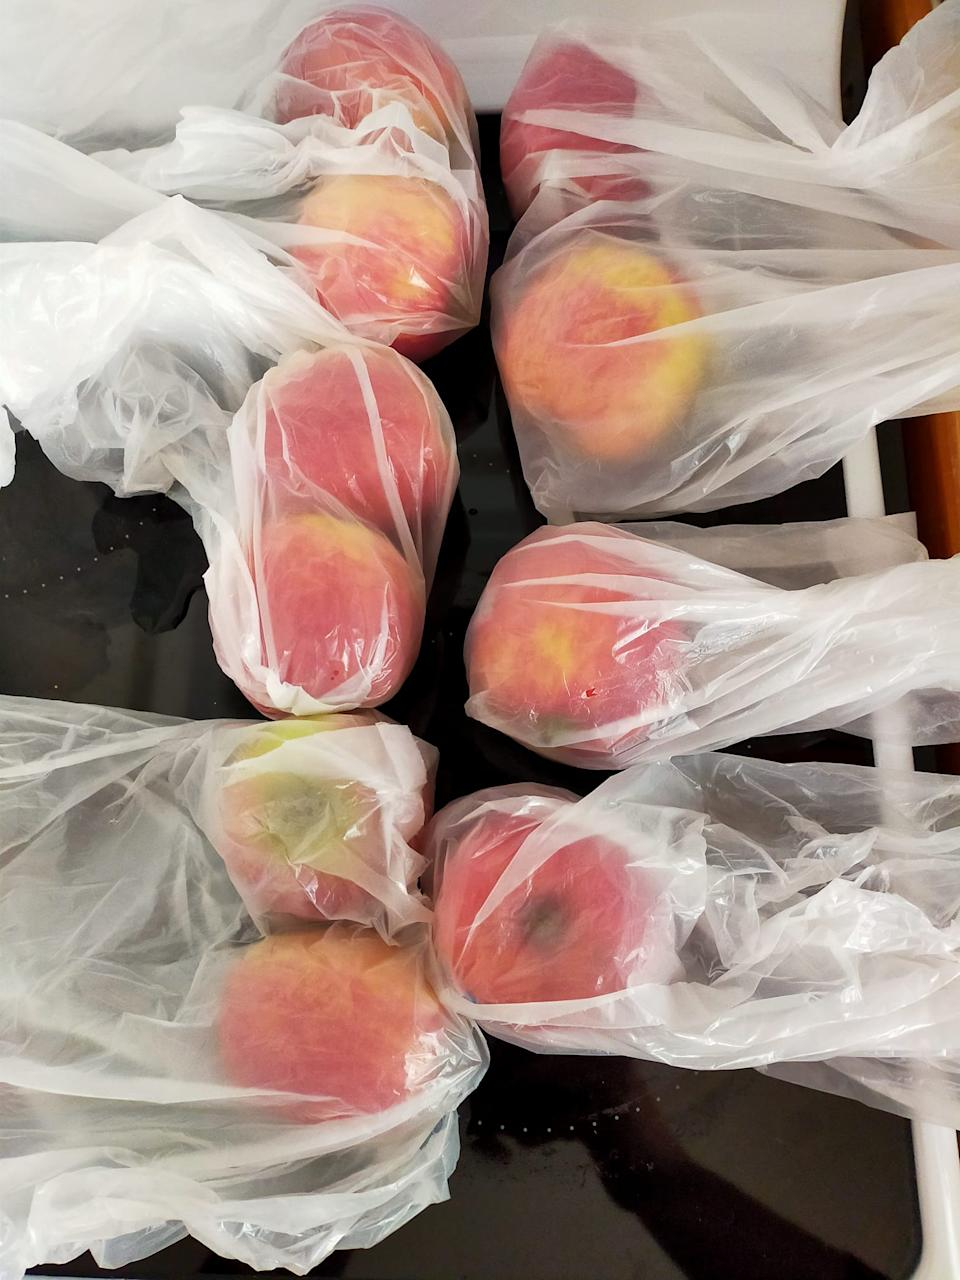 Ten apples delivered in six bags by Coles, angering one of its customers.